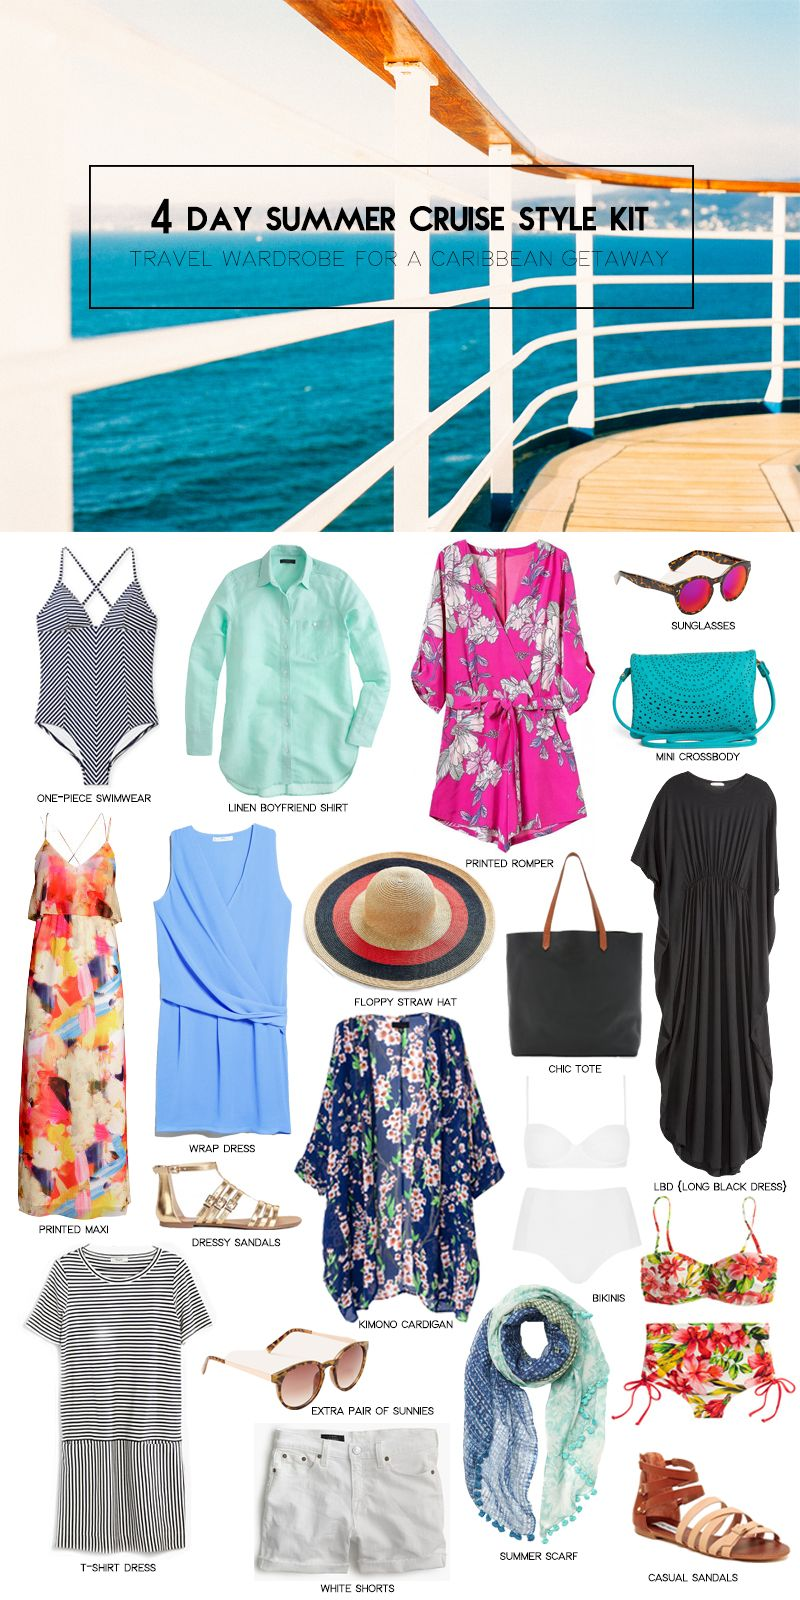 What I'm Wearing For A Sunny Little Getaway